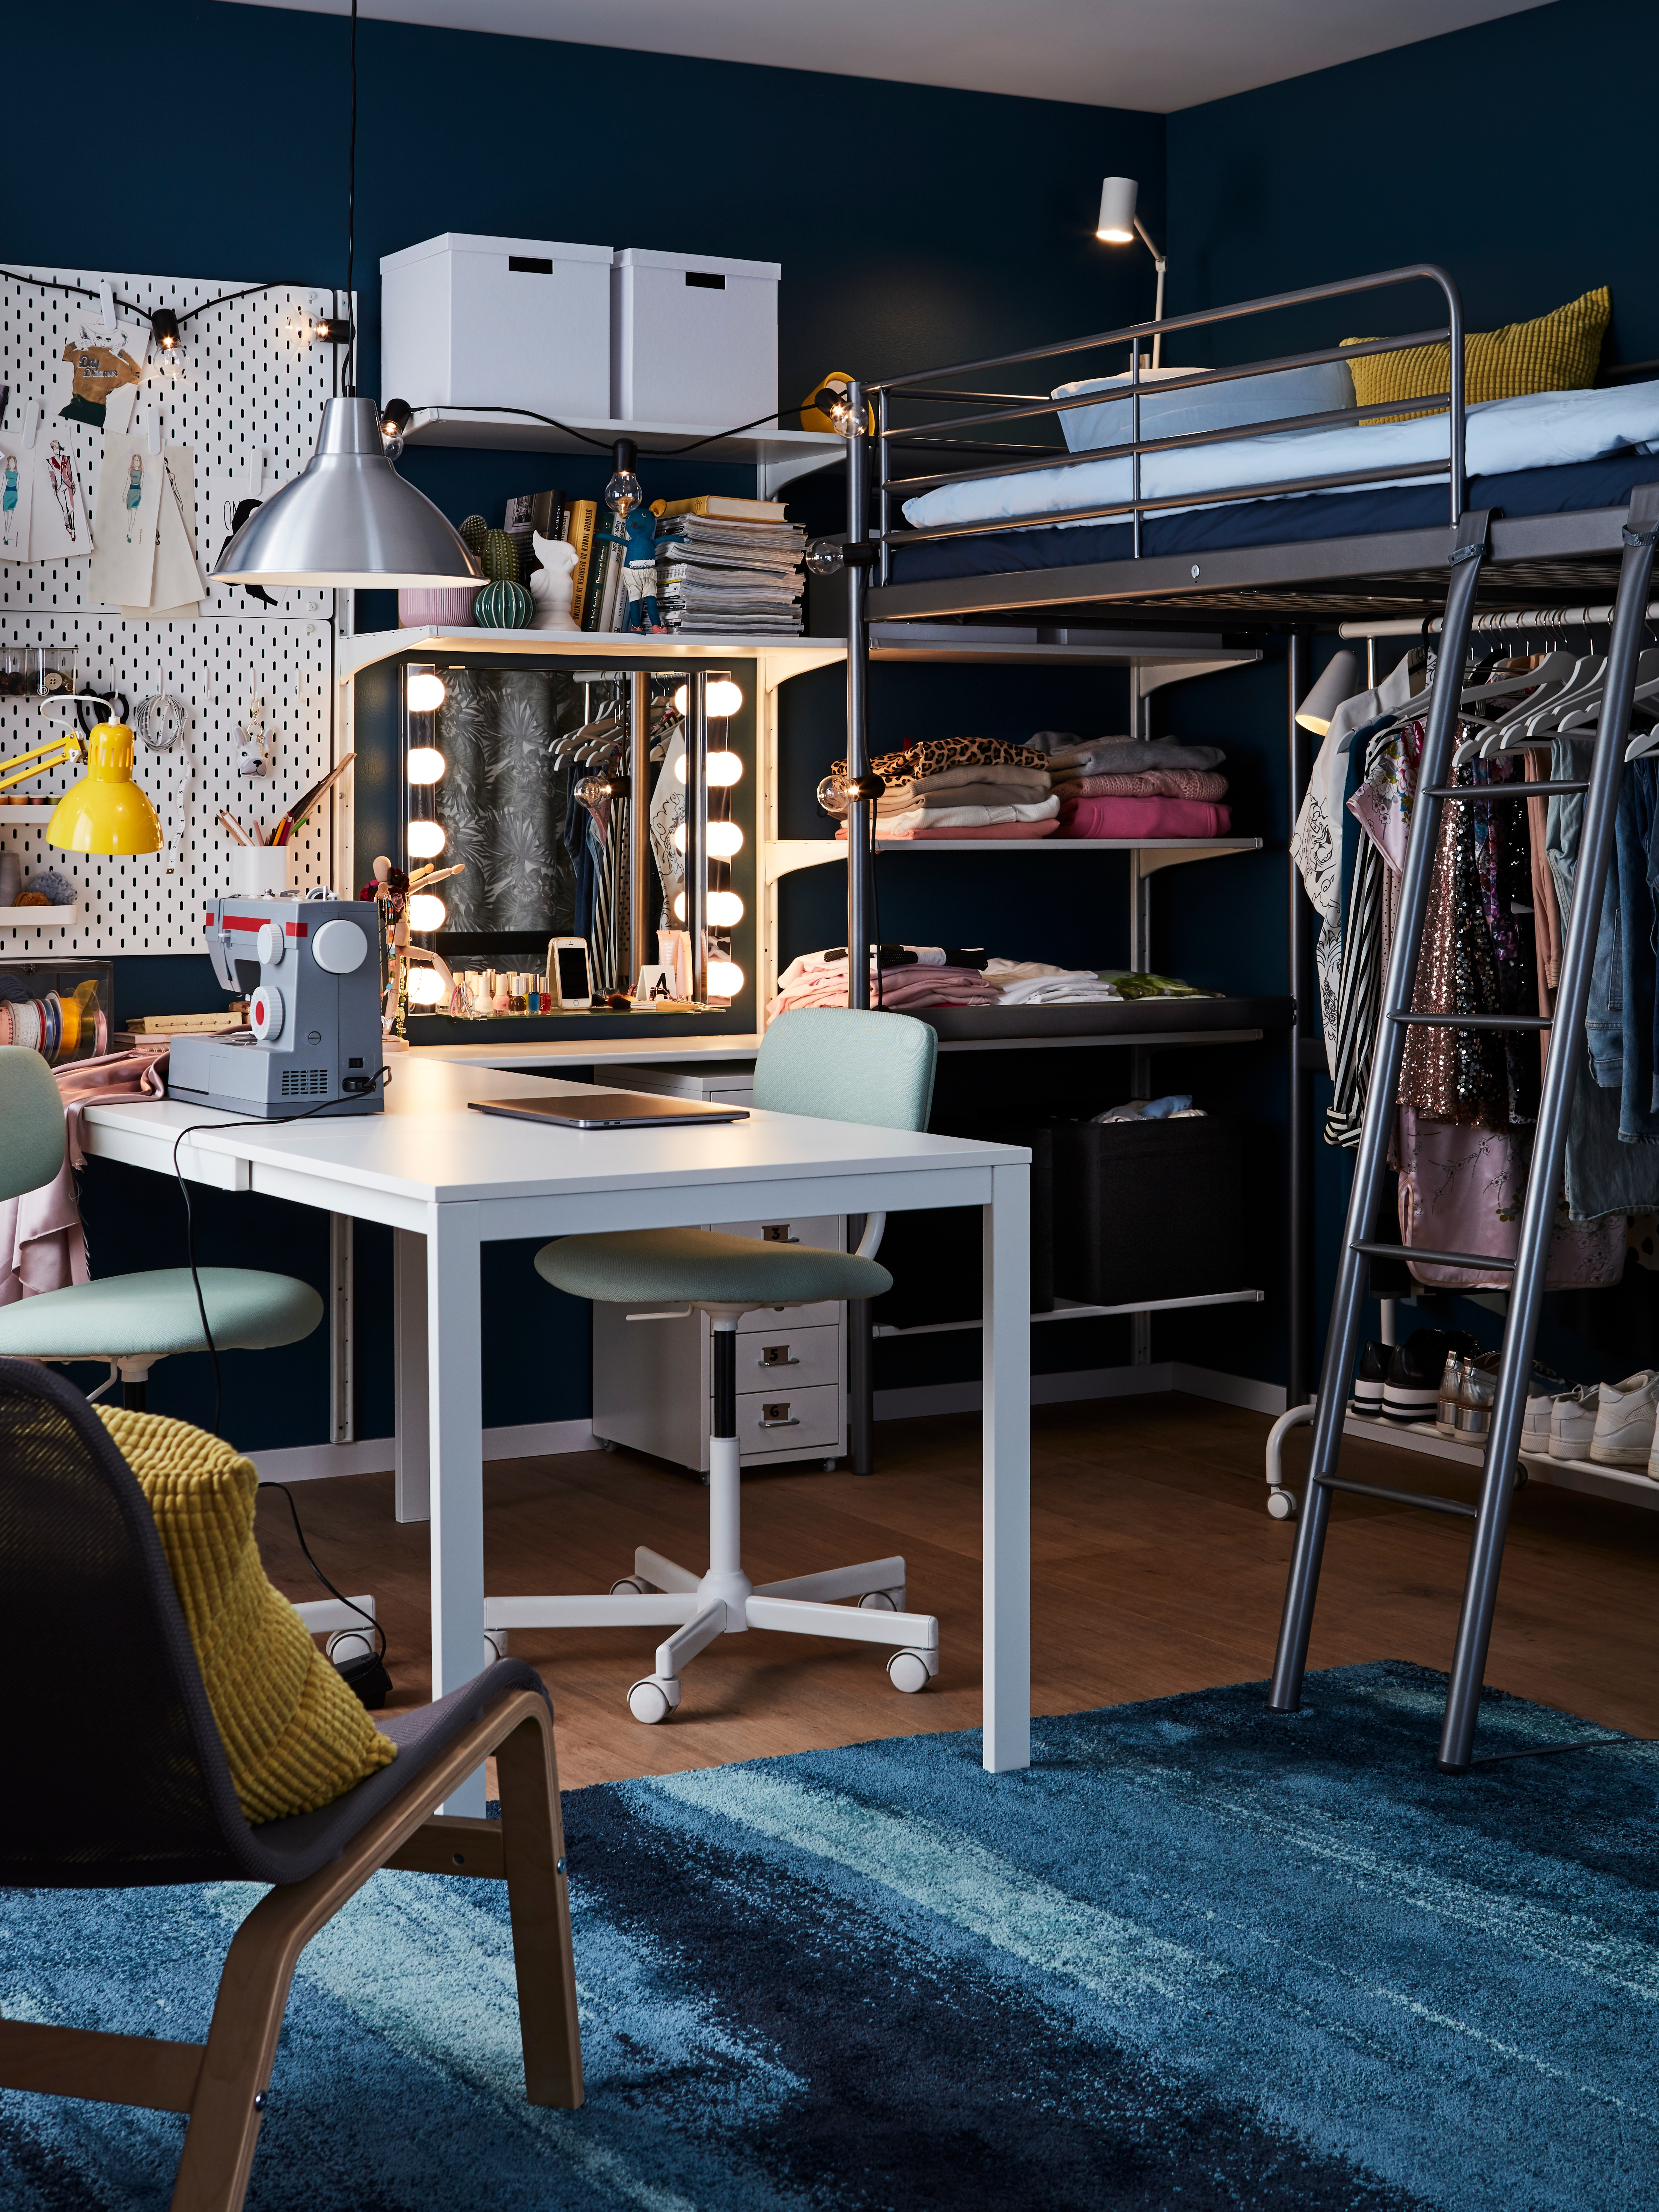 A silver-colour, steel SVÄRTA loft bed frame is in the corner of a room, with a clothes rack below and a sewing table nearby.